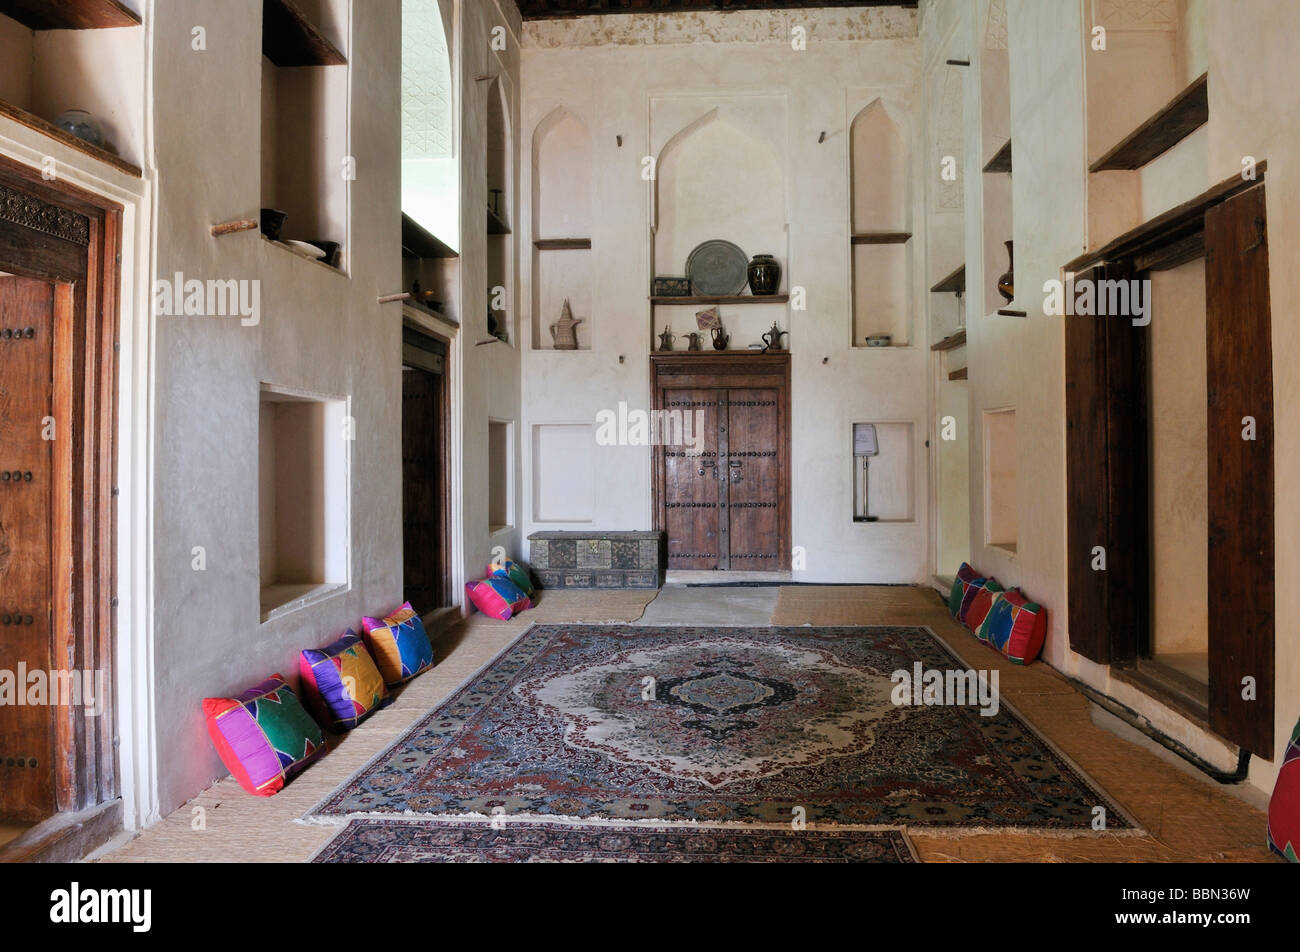 Traditional Arabian Living Room At Jabrin Castle Or Fort, Dakhliyah Region,  Sultanate Of Oman, Arabia, Middle East